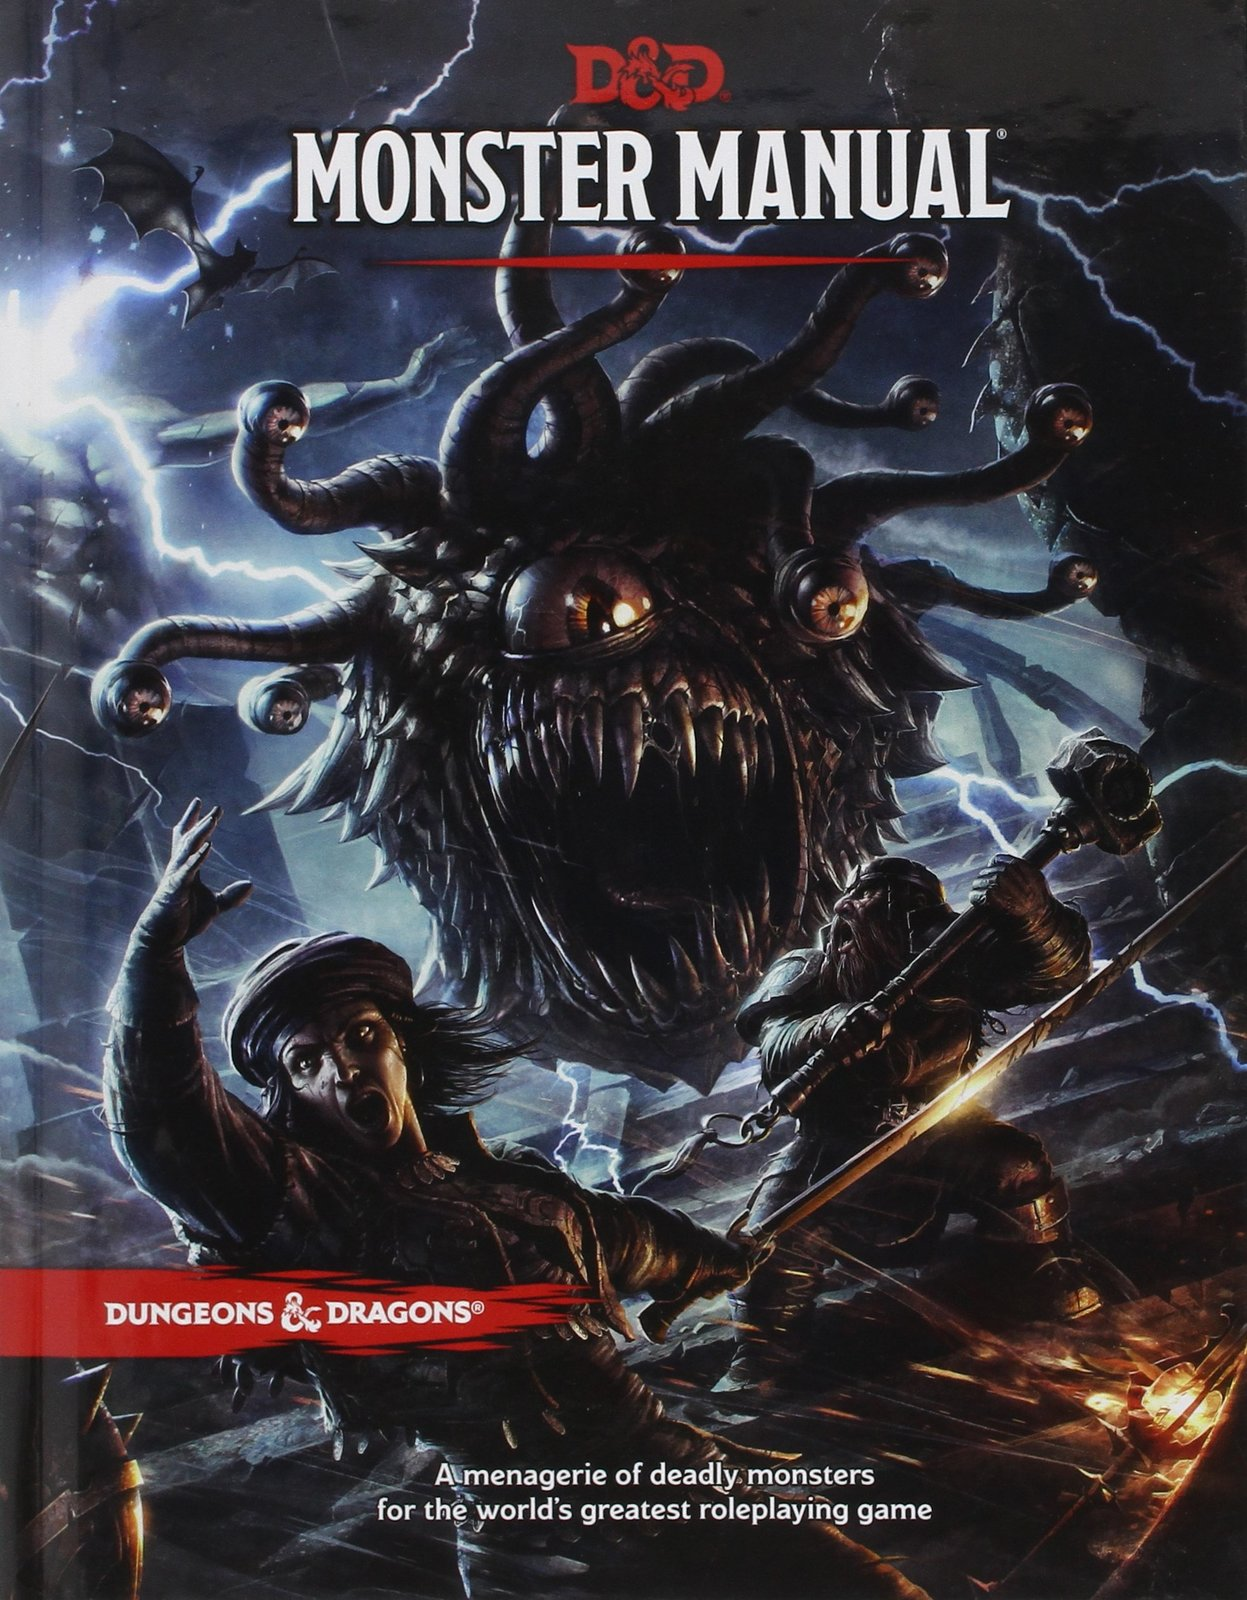 Monster Manual: A Dungeons & Dragons Core Rulebook (Dungeons & Dragons Core Rulebooks)